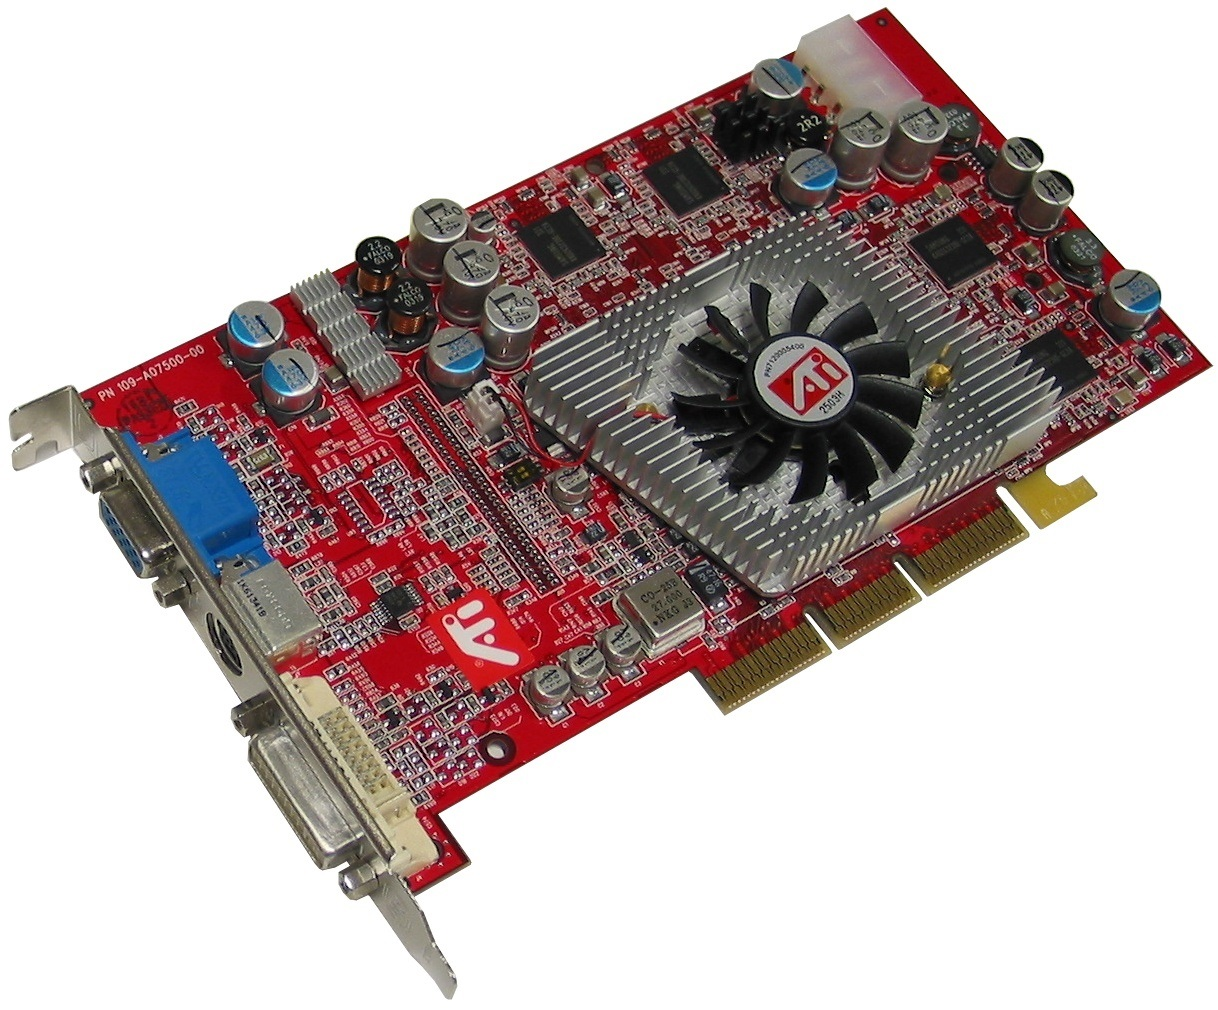 Picture Of IGT 109 A07500 00 ATI Radeon 9800 Pro Video Card